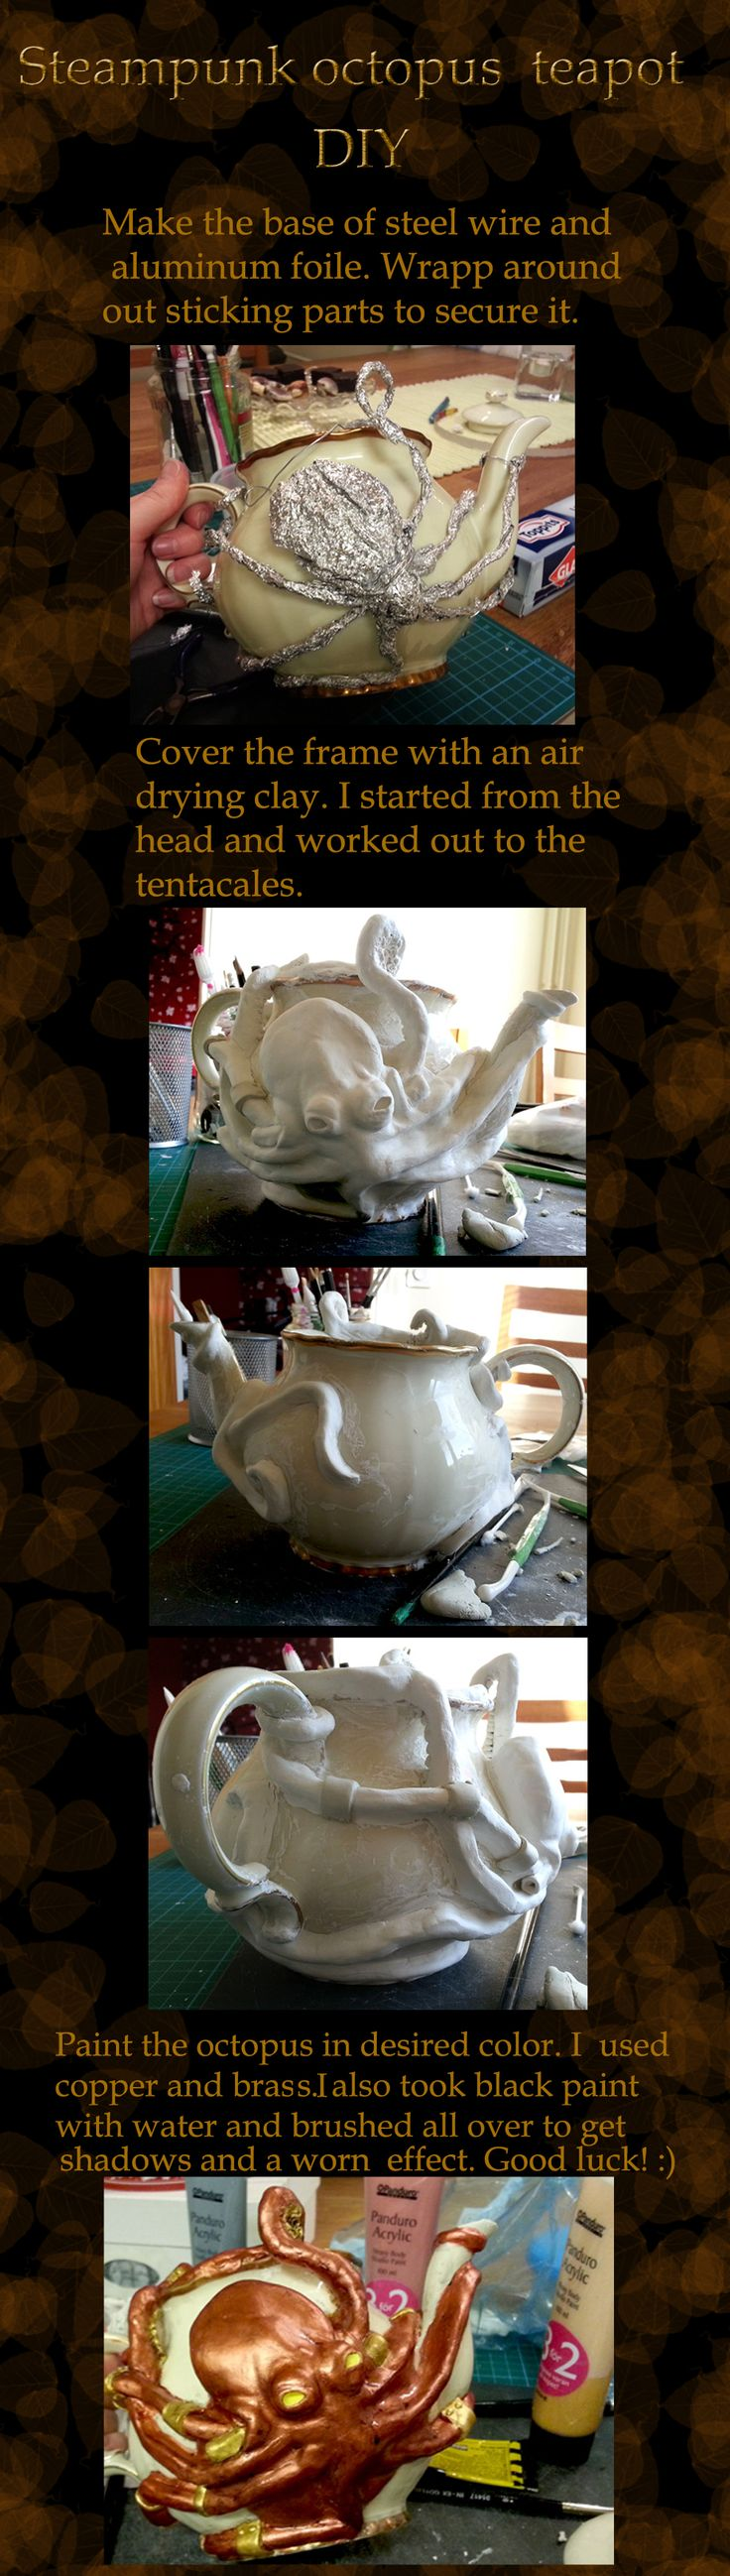 DIY Steampunk Ocotpus teapot. Want to see more pictures and info about this teapot see my blog: http://pastlifedesign.blogspot.se/    #steampunk #teapot #octopus